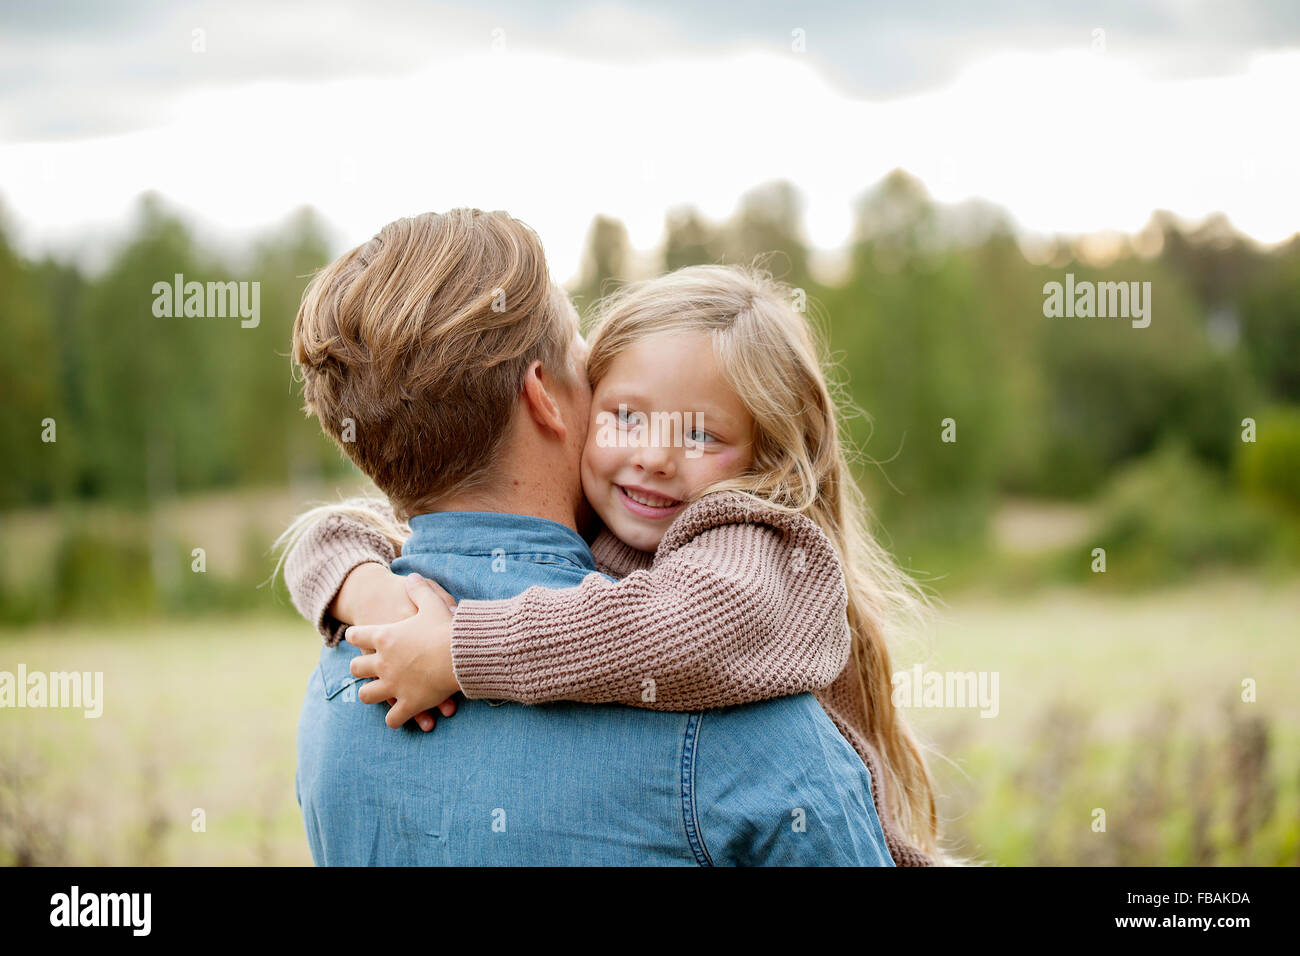 Finland, Uusimaa, Raasepori, Karjaa, Young girl (6-7) hugging her father - Stock Image